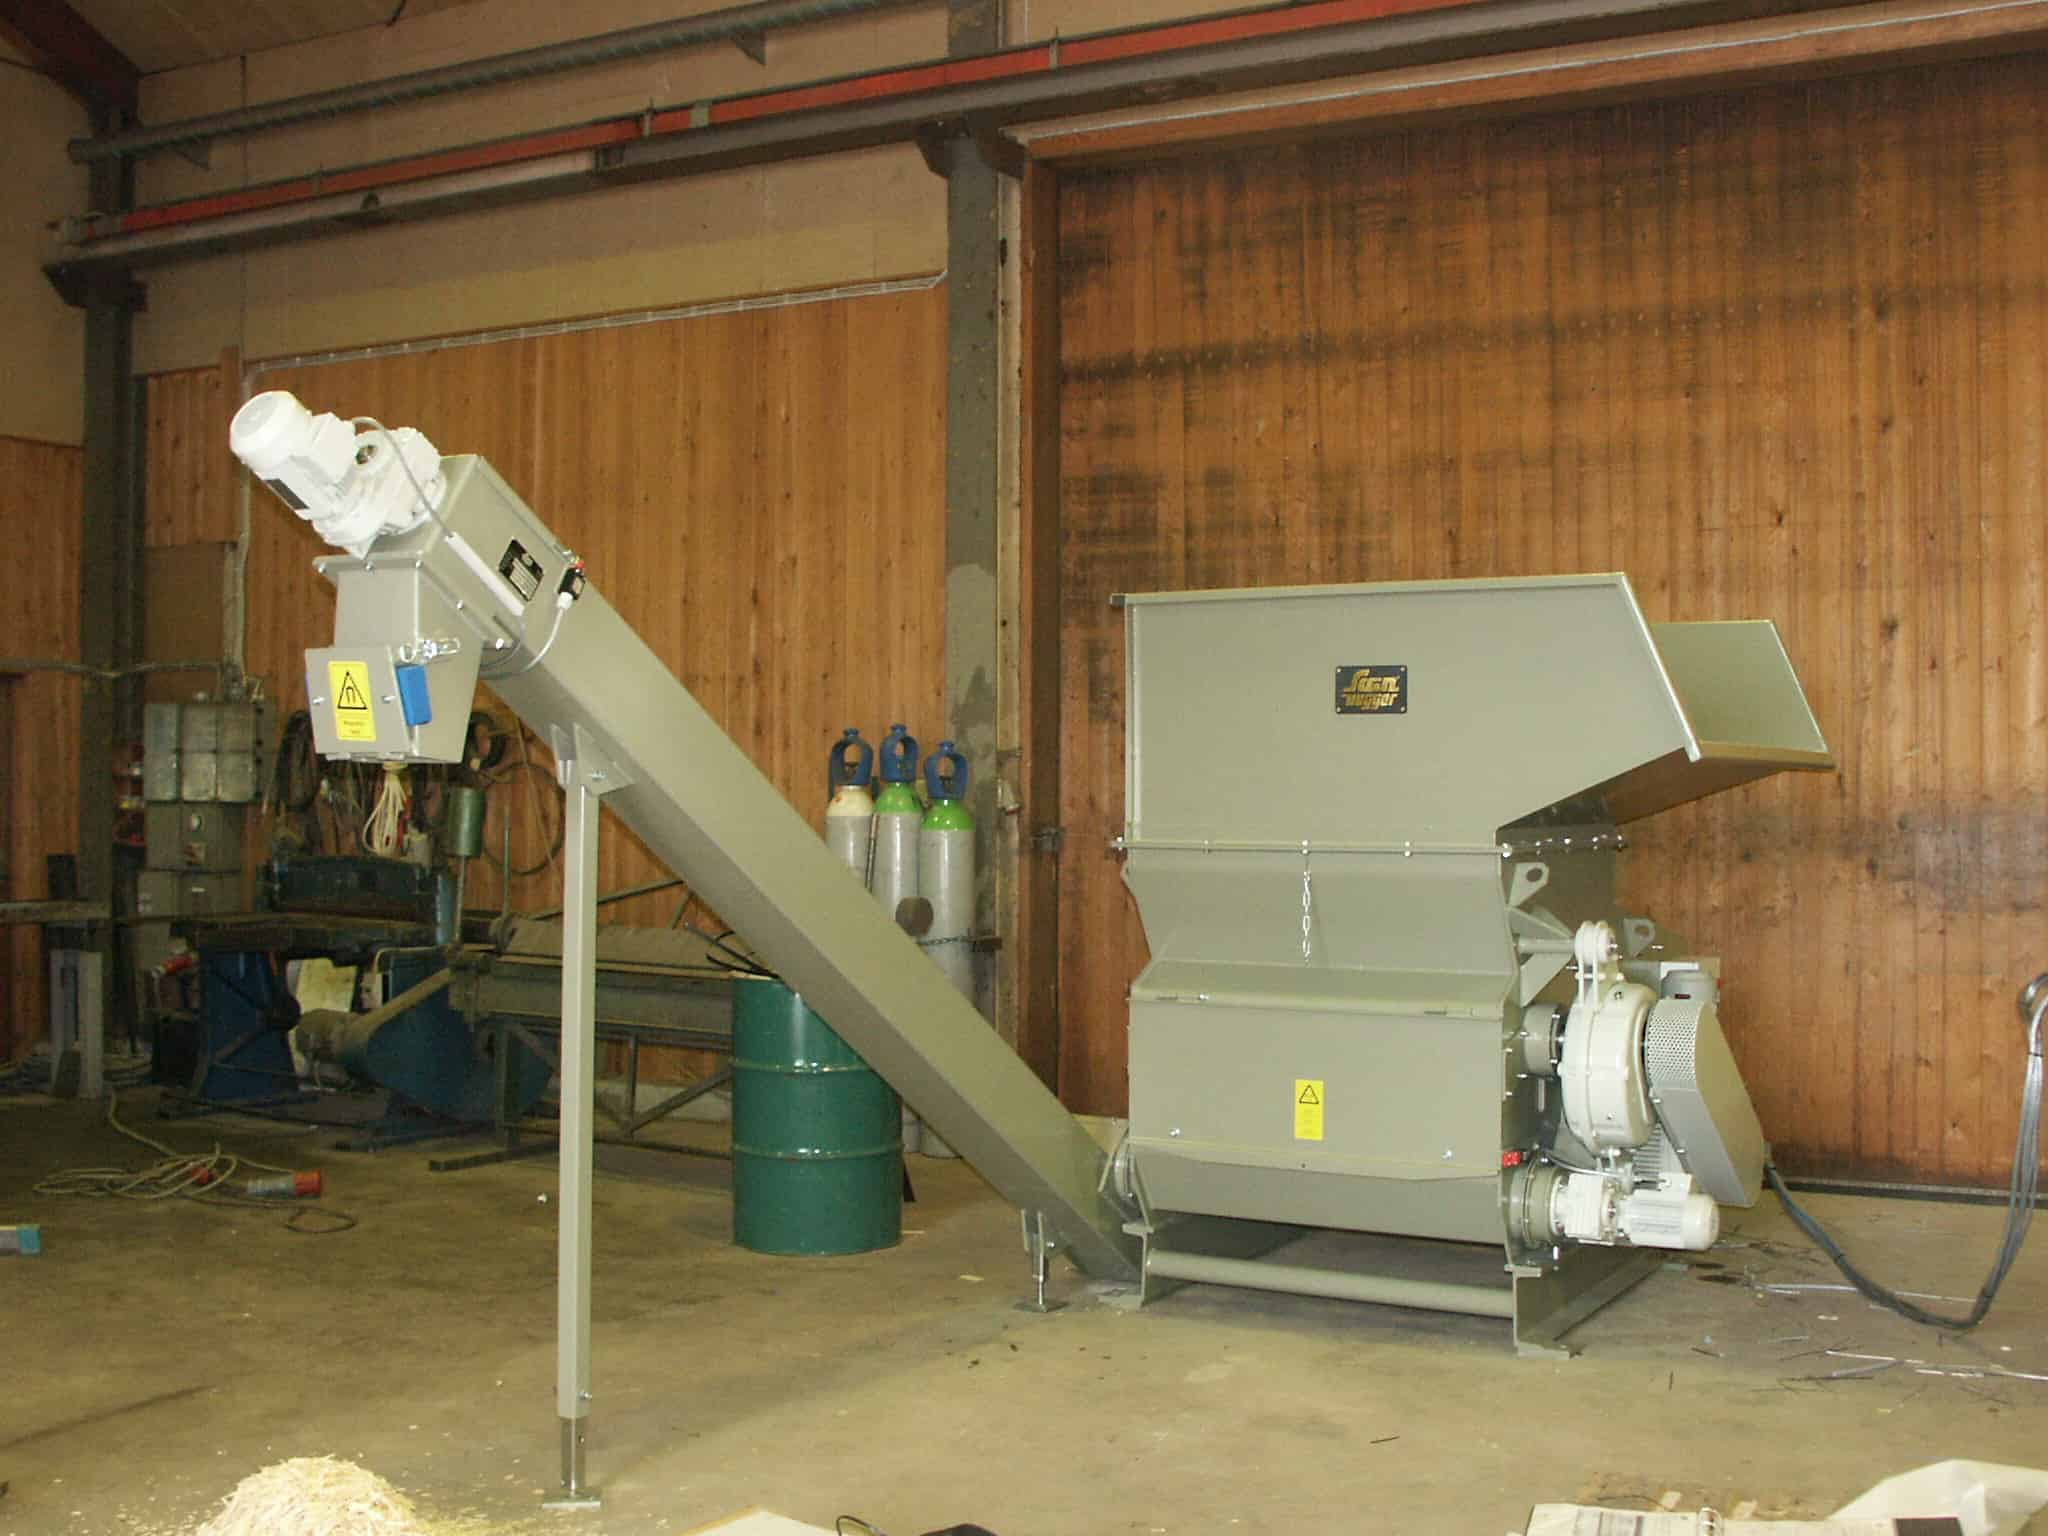 HL 3/10/10 with auger conveyor